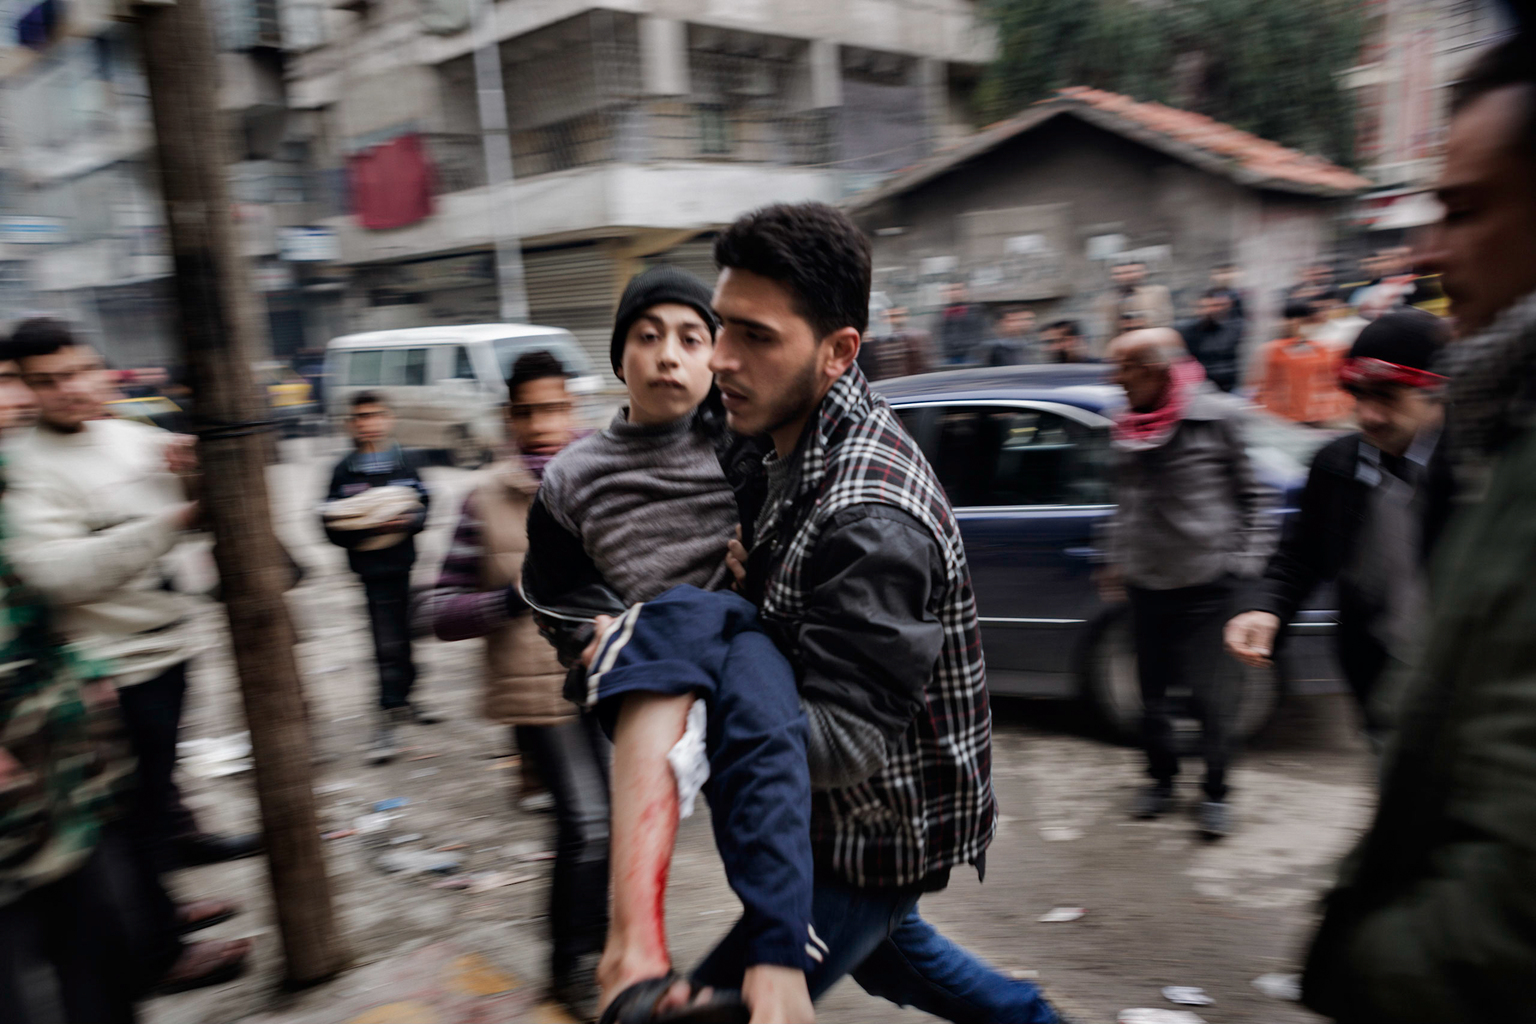 February 7, 2013, Shaar, Aleppo. A hospital worker rushes a boy wounded by Syrian Government shelling into a field hospital.